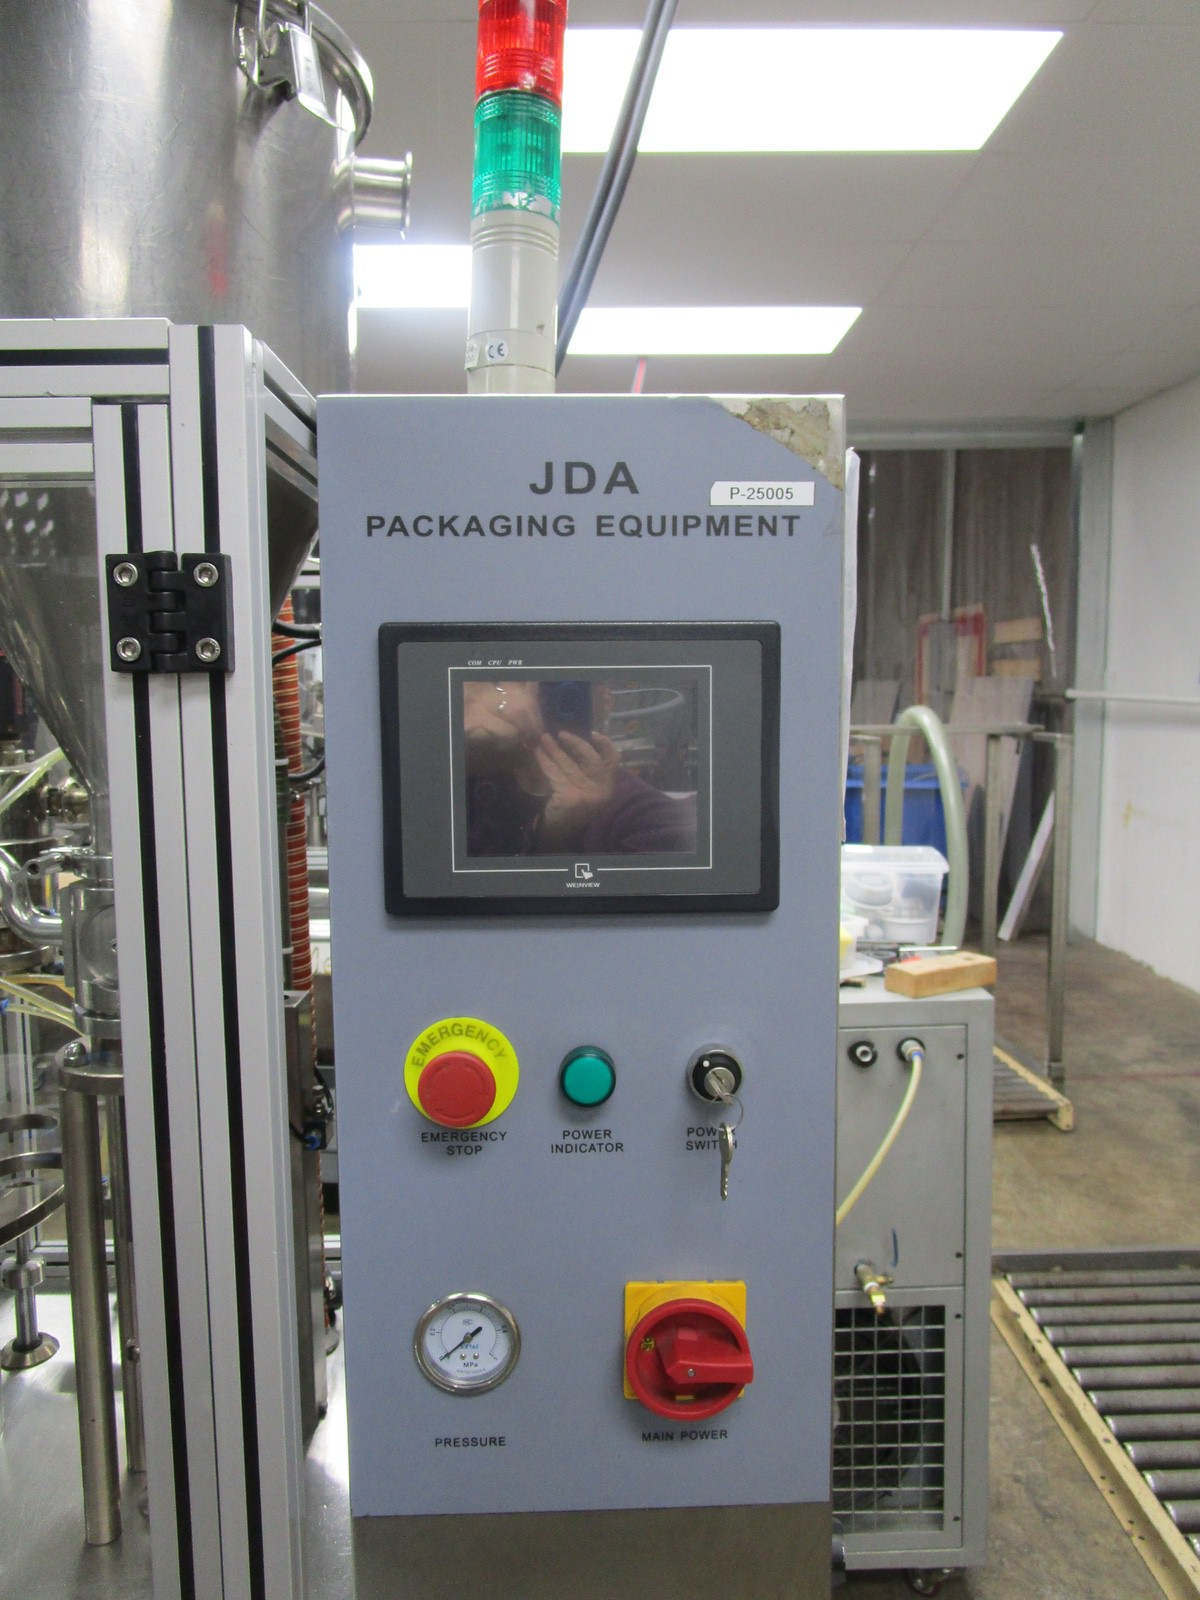 2012 JDA Packaging Equipment Super 30 Automatic 9-Pocket Hot Air Tube Filler s/n 230 | Rig Fee: $650 - Image 6 of 14